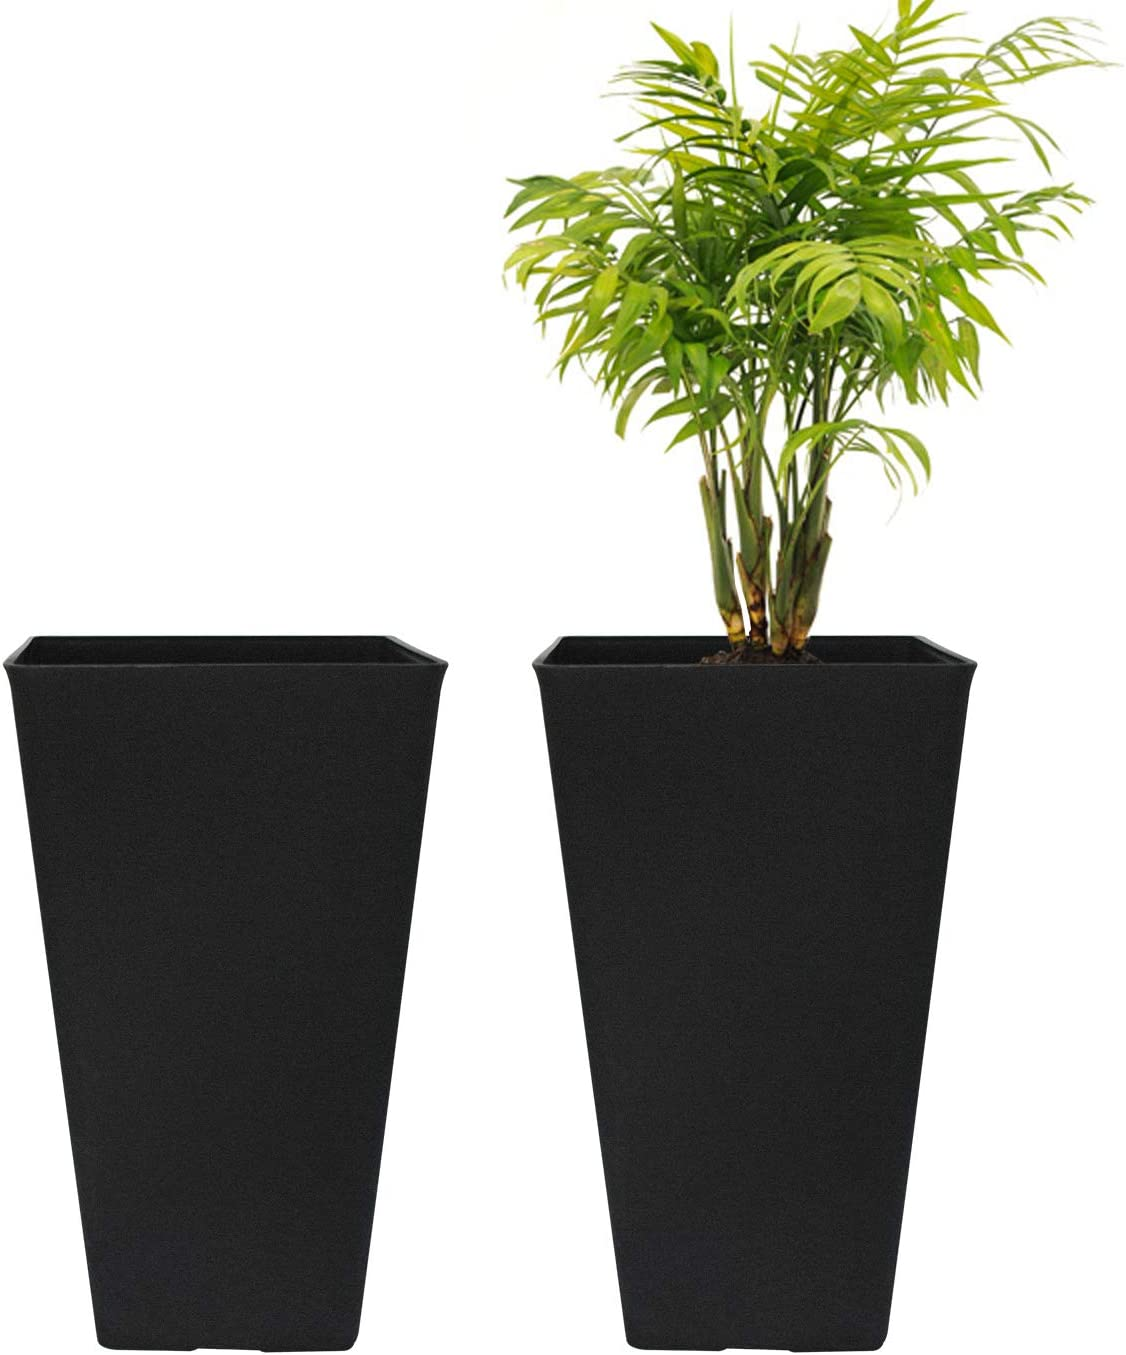 Tall Planters 20 Inch, Flower Pot Pack 2, Patio Deck Indoor Outdoor Garden Tree Resin Planters (Black)